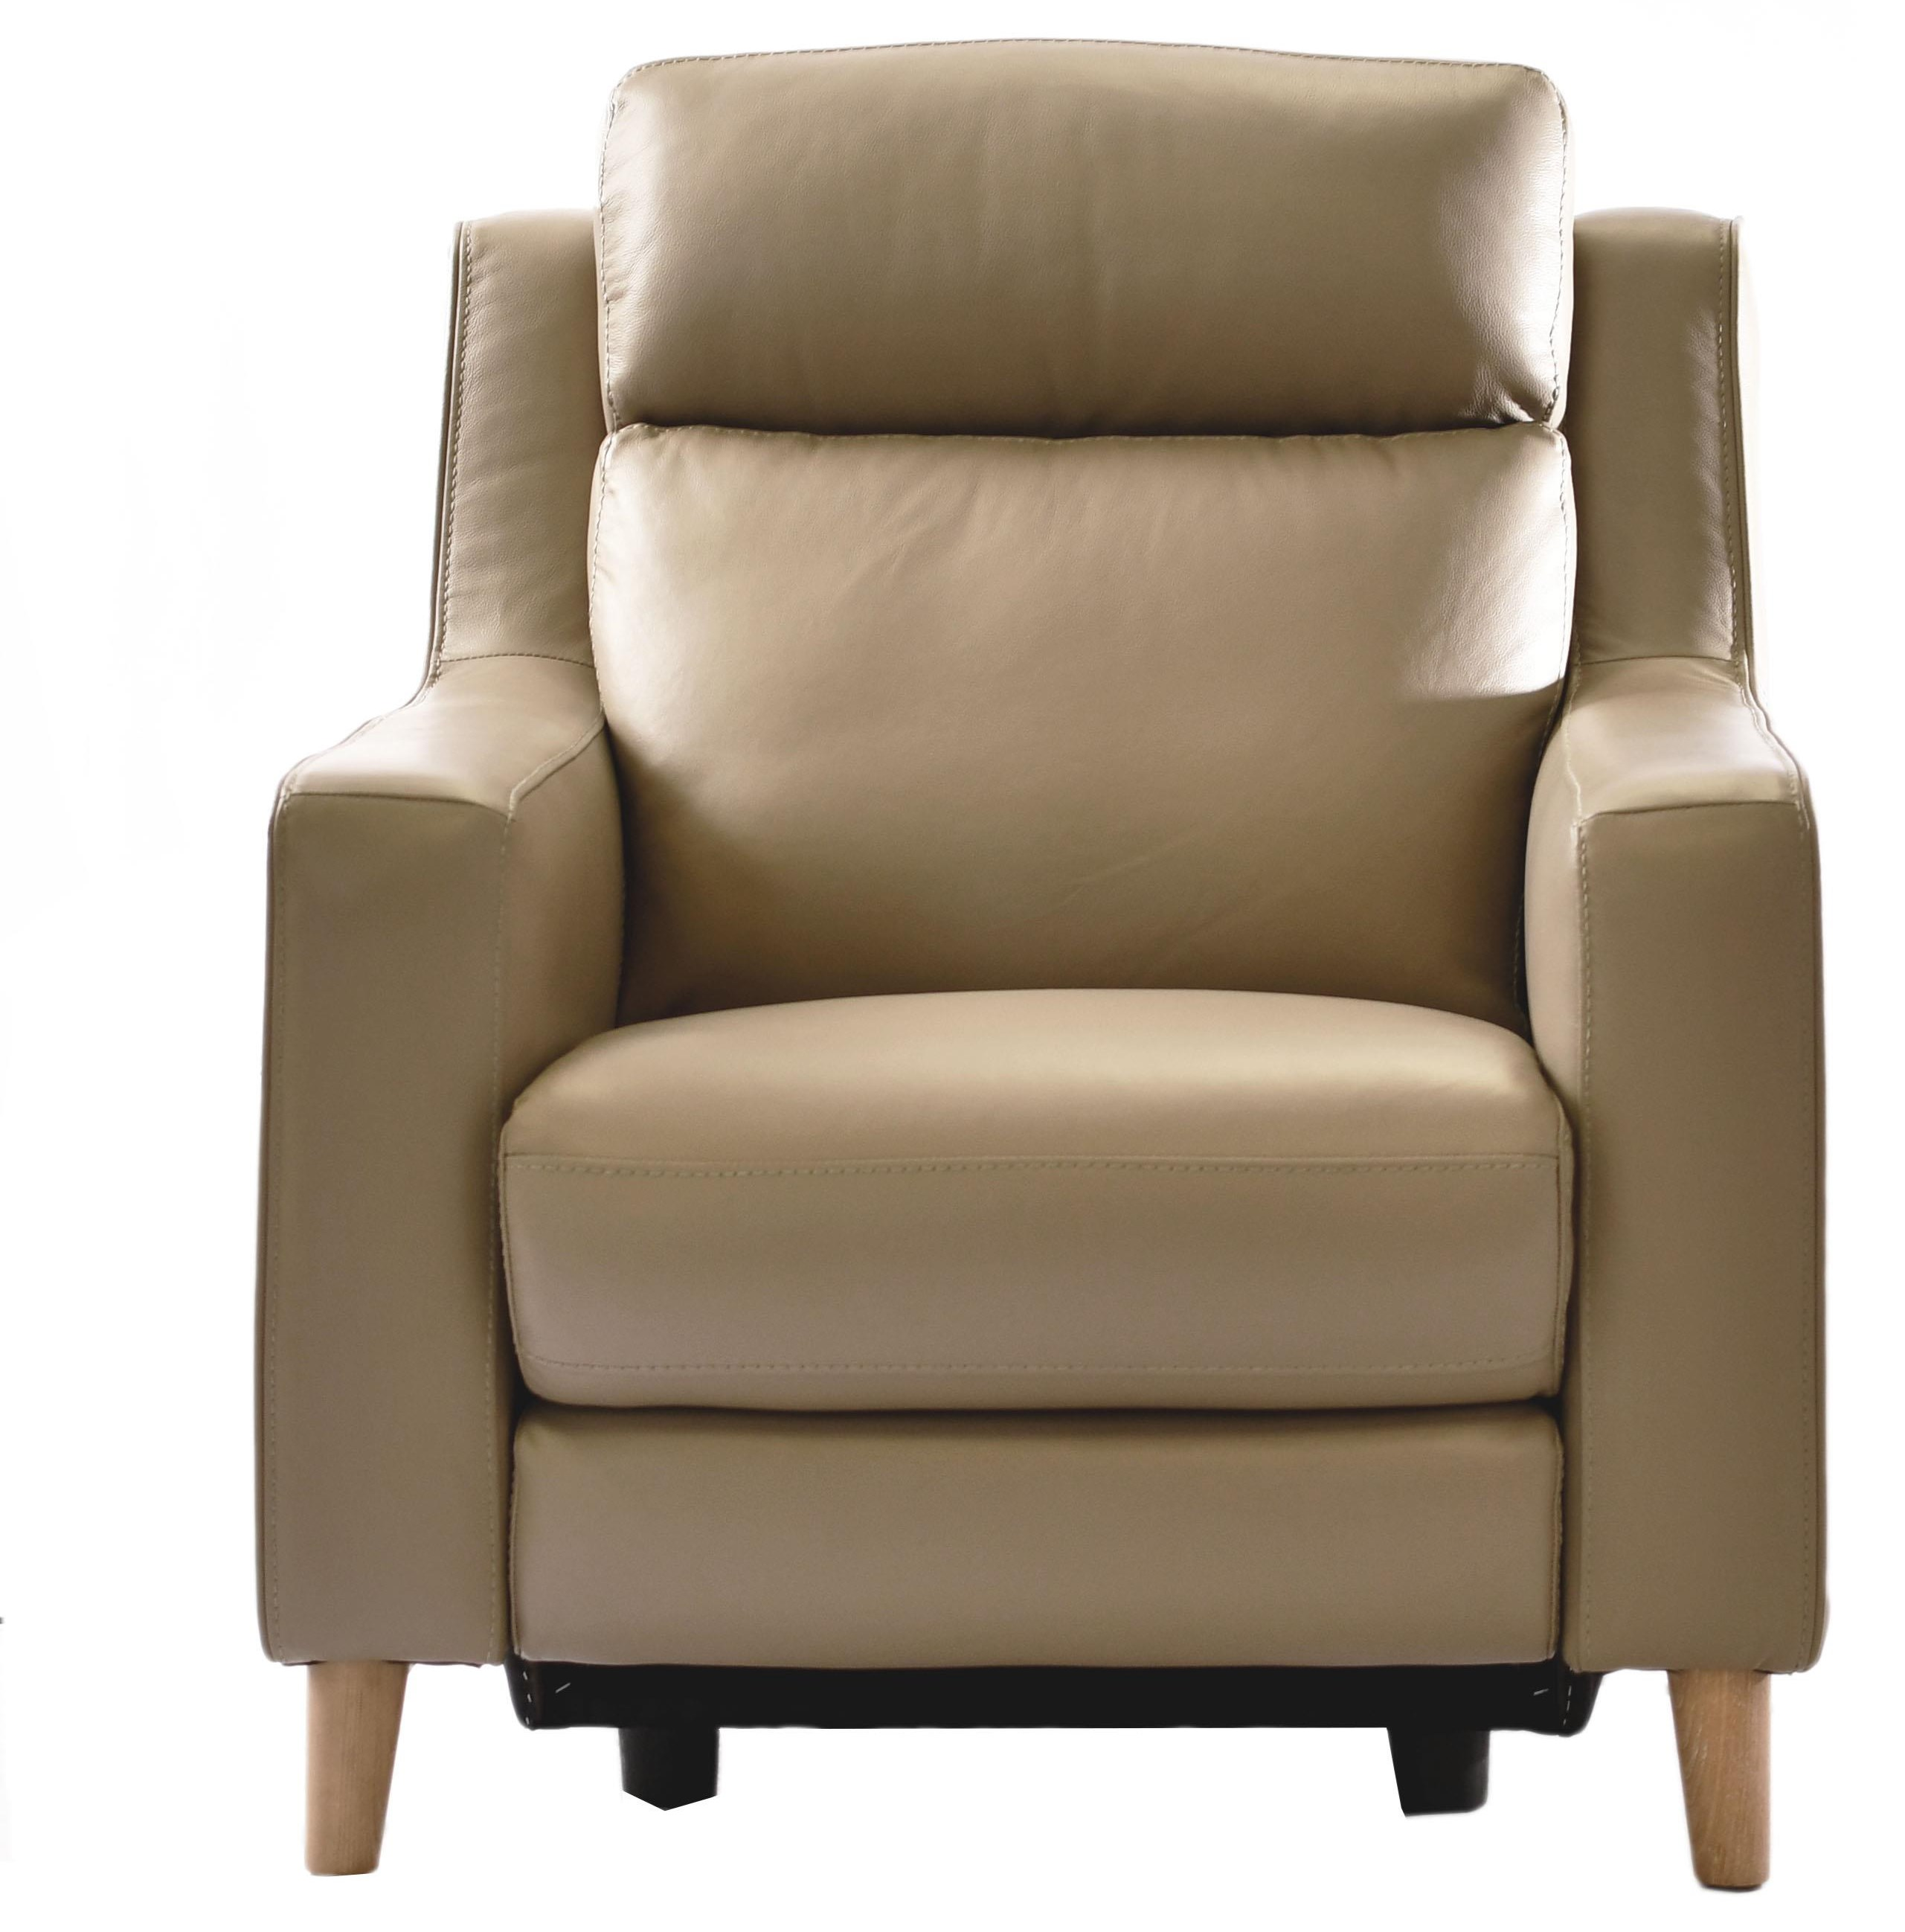 32097 Leather Power Motion Chair at Bennett's Furniture and Mattresses